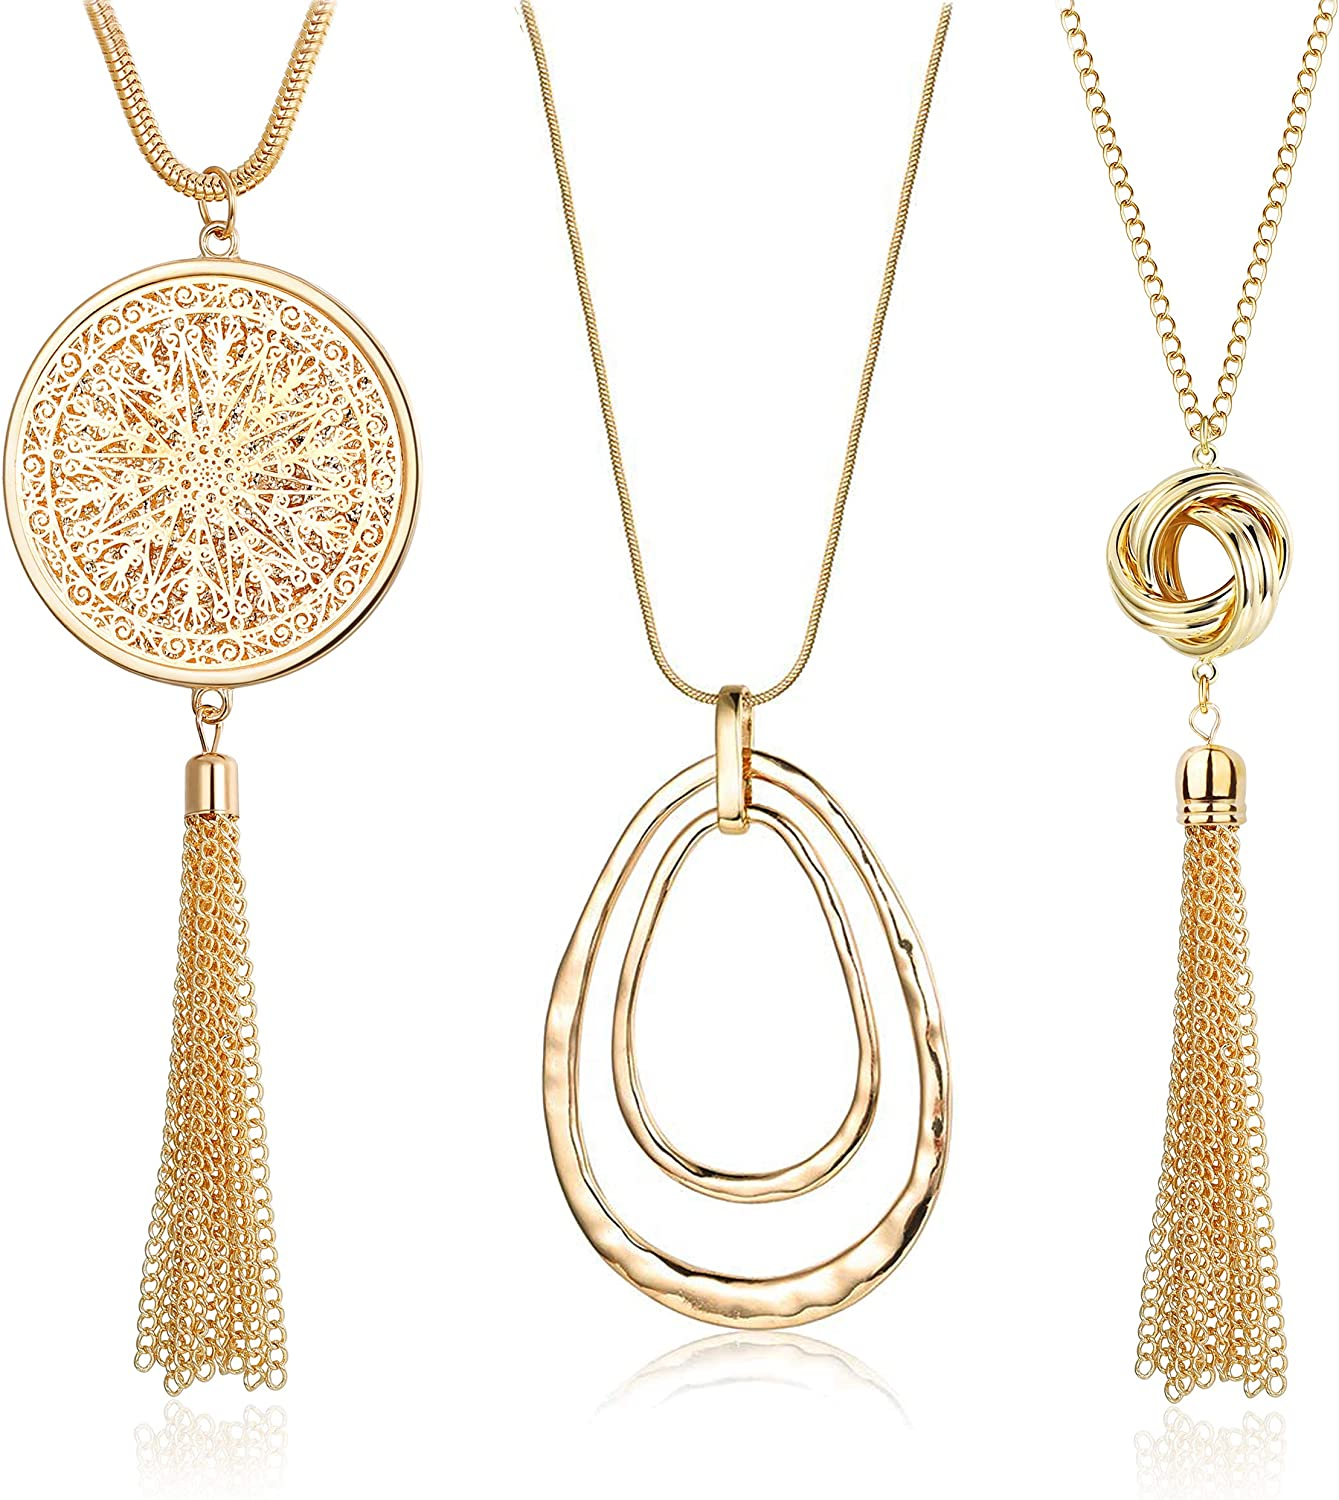 FUNRUN JEWELRY 3PCS Long Pendant Necklace for Women Circle Knot Tassel Necklace Sweater Chain Statement Necklace Set